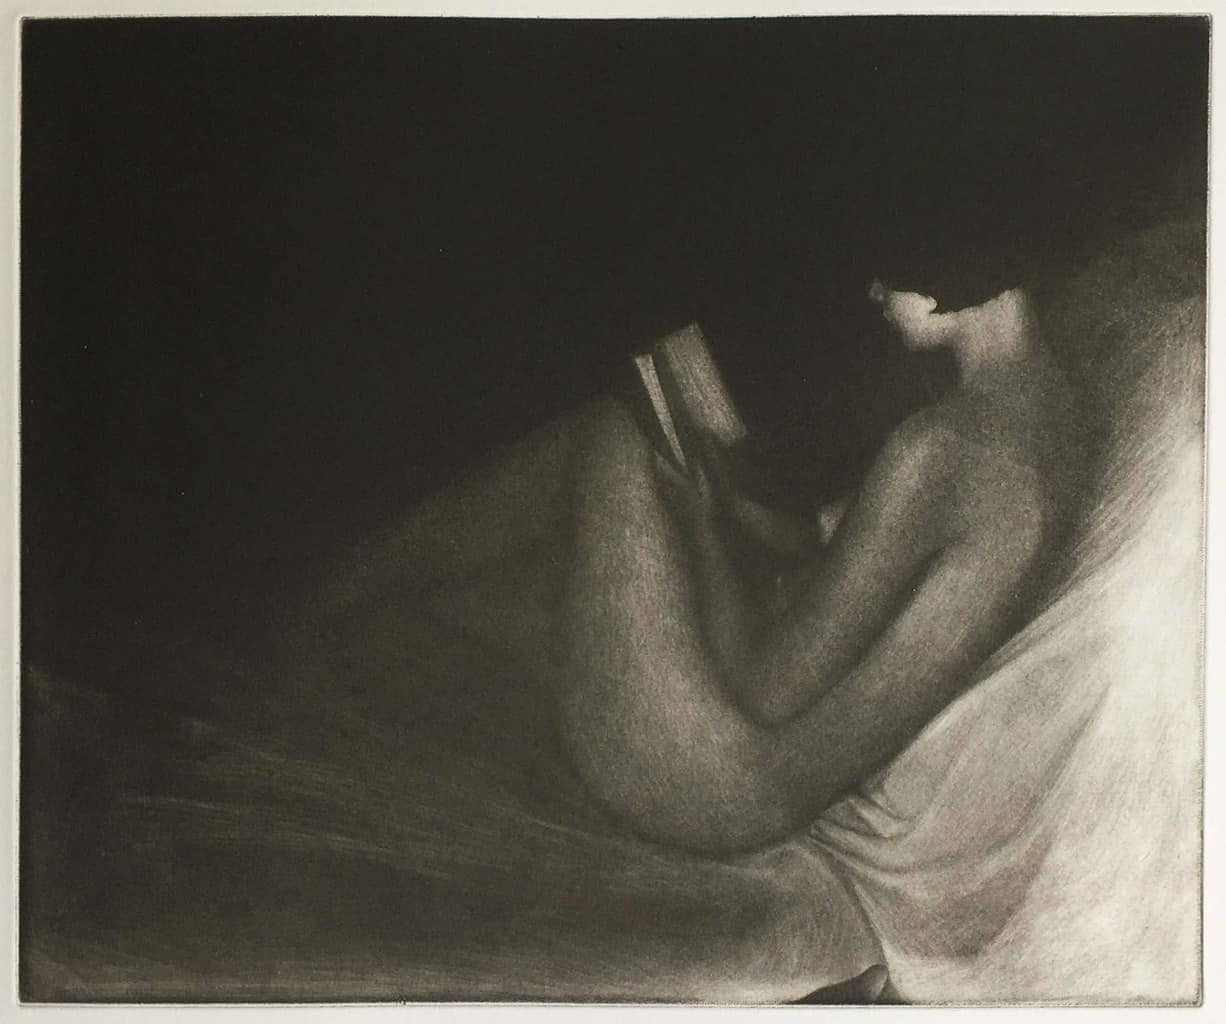 """""""Claire Reading"""" - picture of a female nude model reading, against a black background. Original print mezzotint by painter-printmaker Marina Kim"""